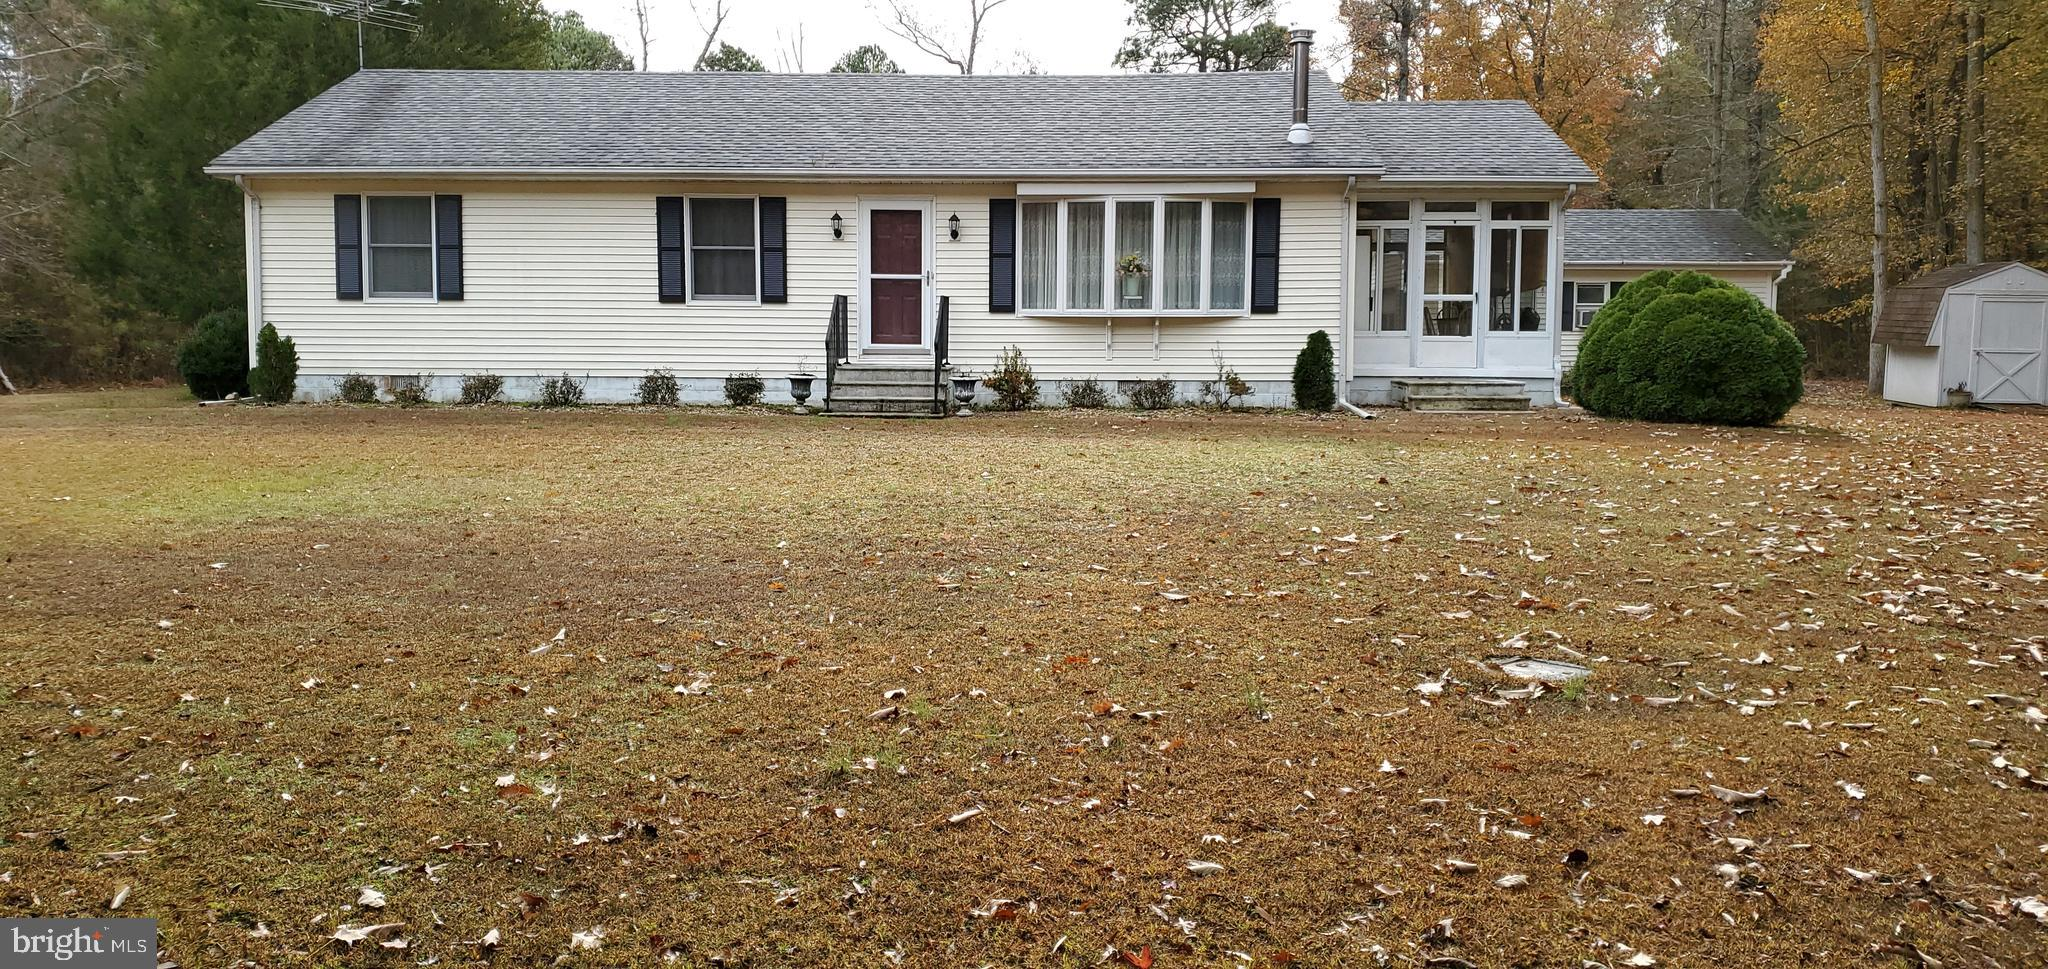 937 PARSONS DRIVE, MADISON, MD 21648